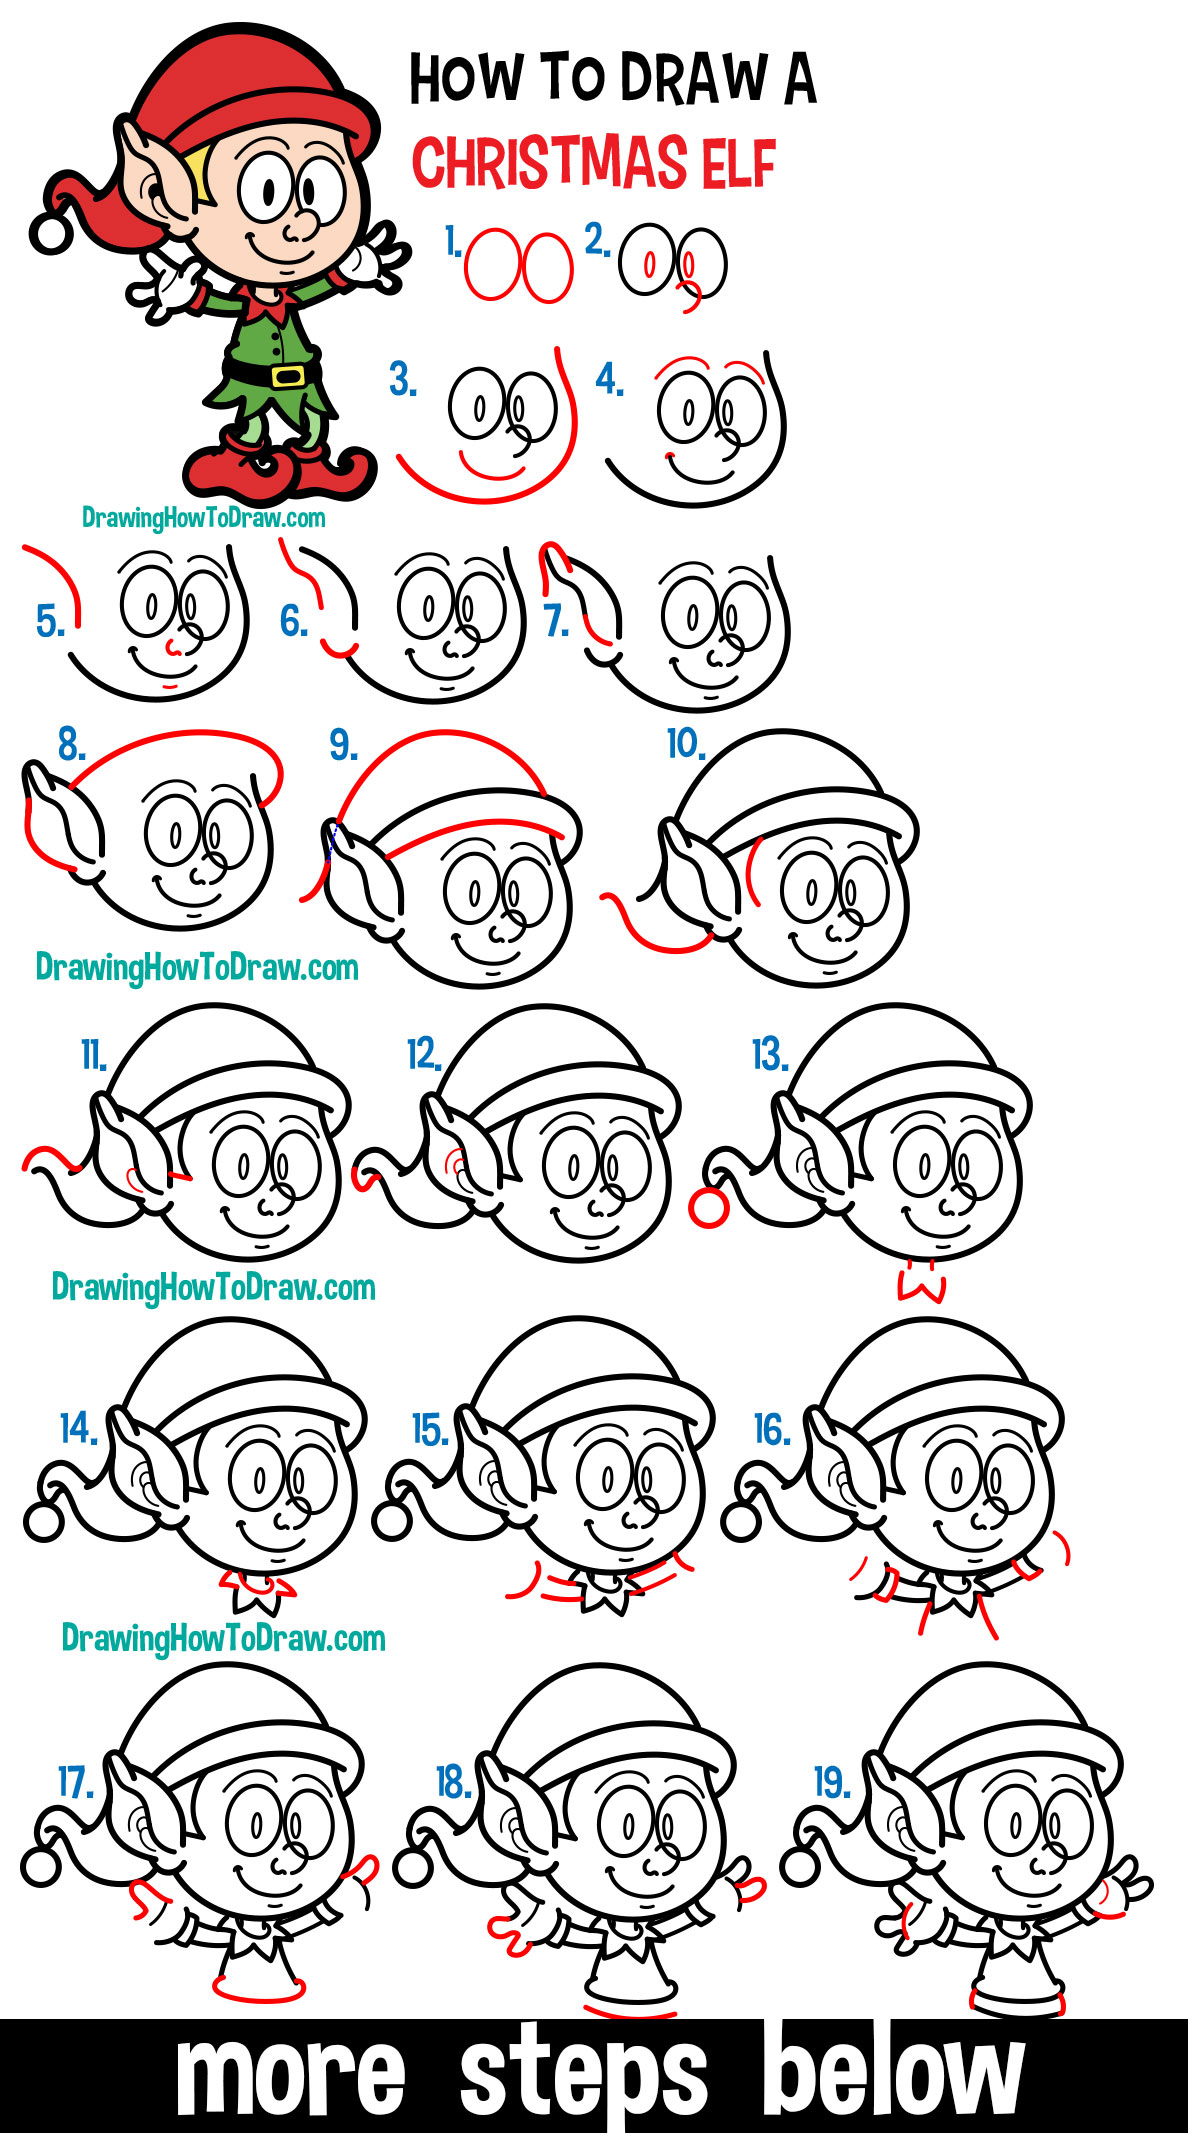 Learn How to Draw a Cartoon Elf for Christmas Easy Step by Step Drawing Lesson for Kids